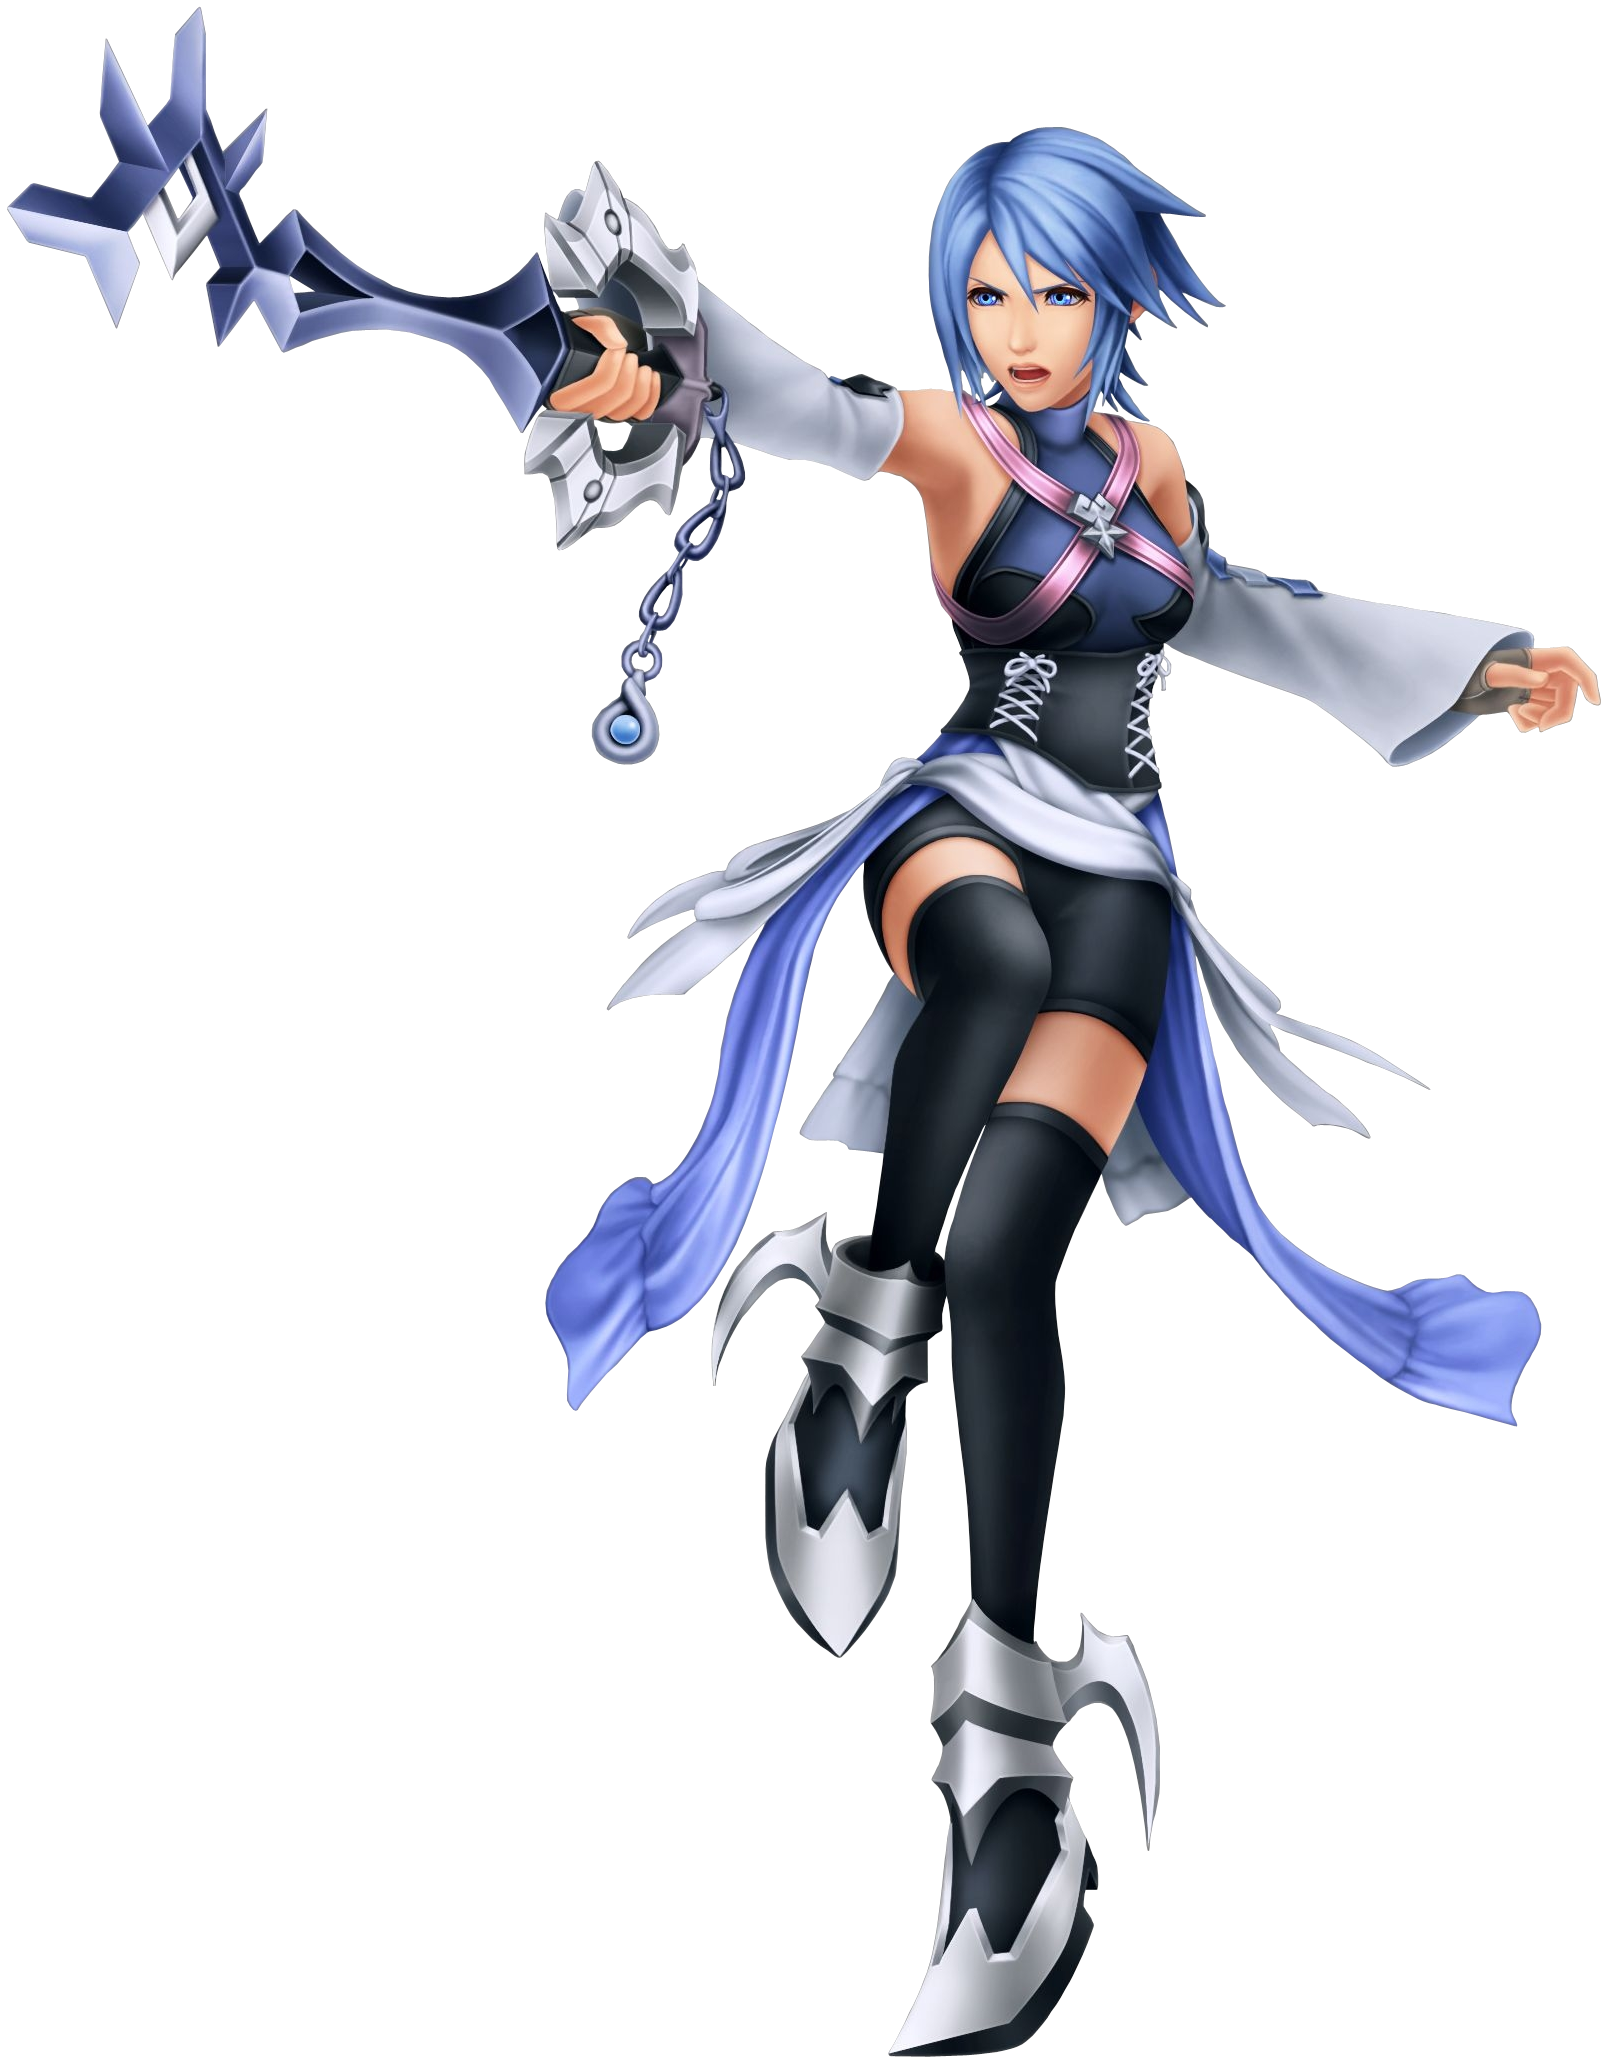 Kingdom hearts png. Image aqua kh superpower